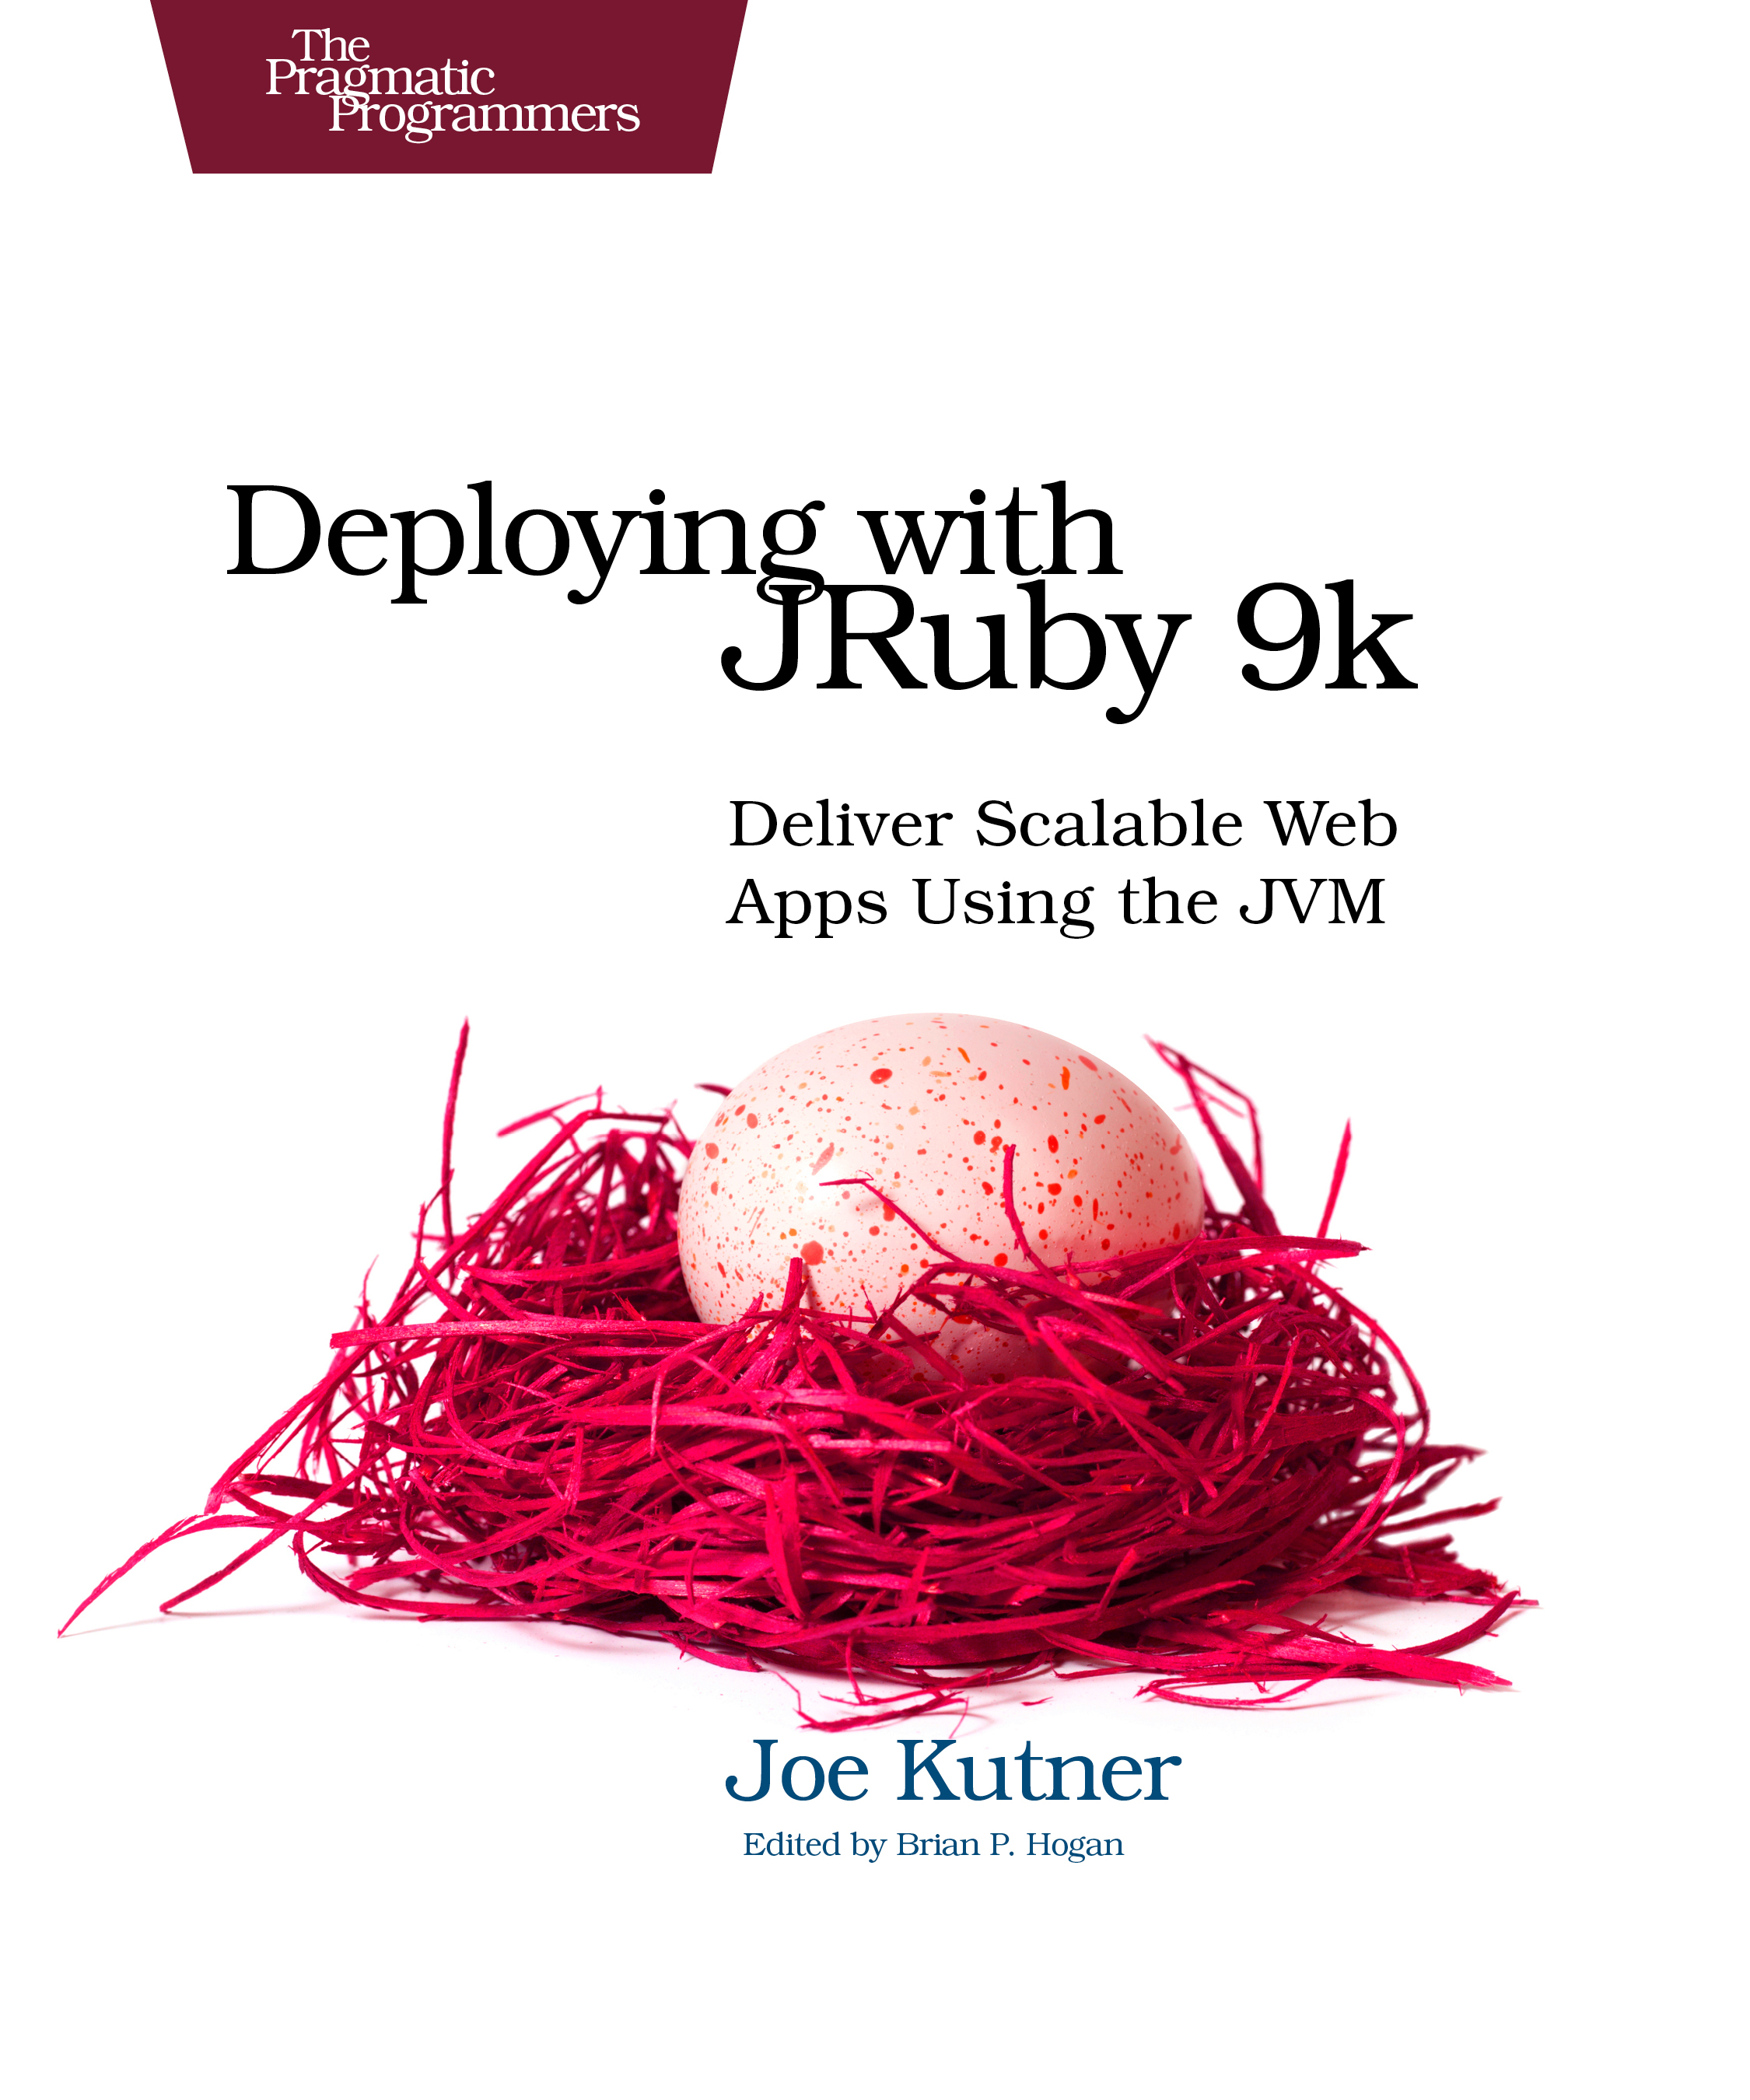 Cover image for Deploying with JRuby 9k